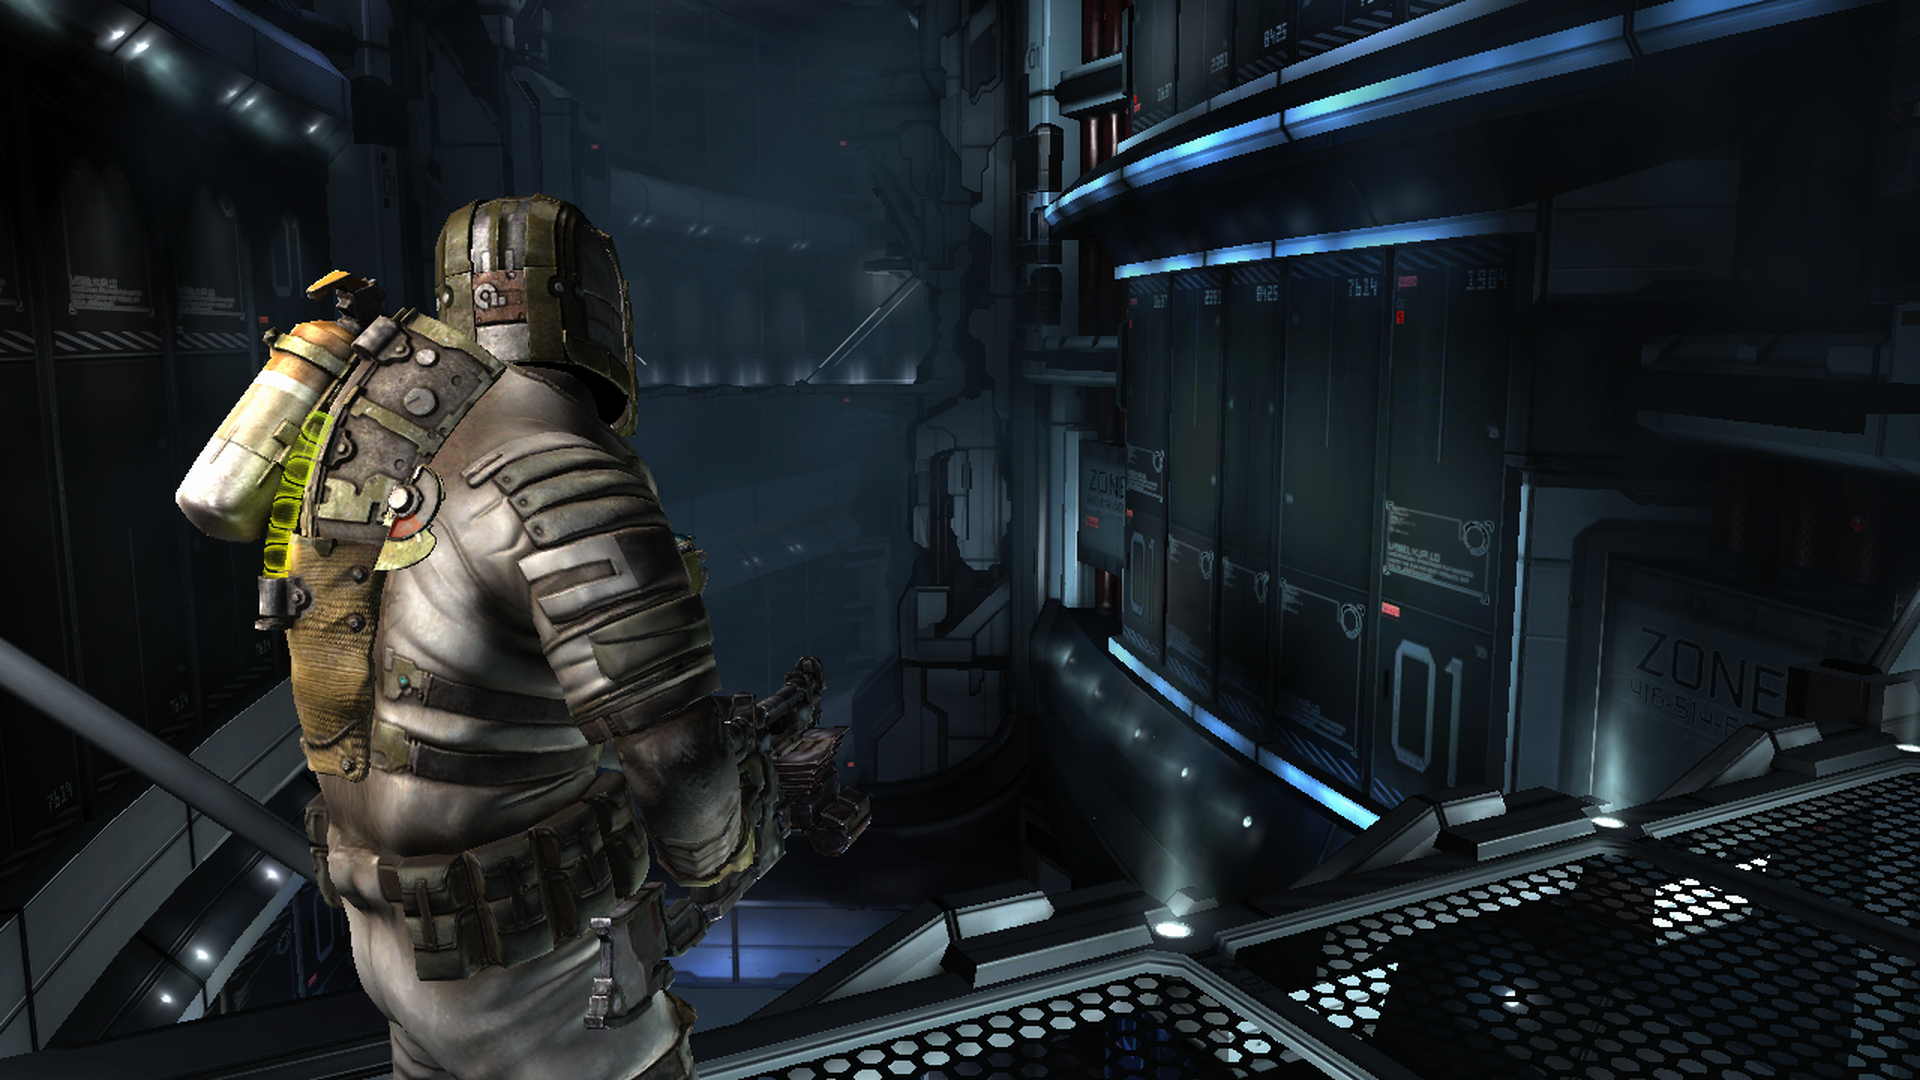 Dead Space 2 Proves That Linear Games Can Be Amazing